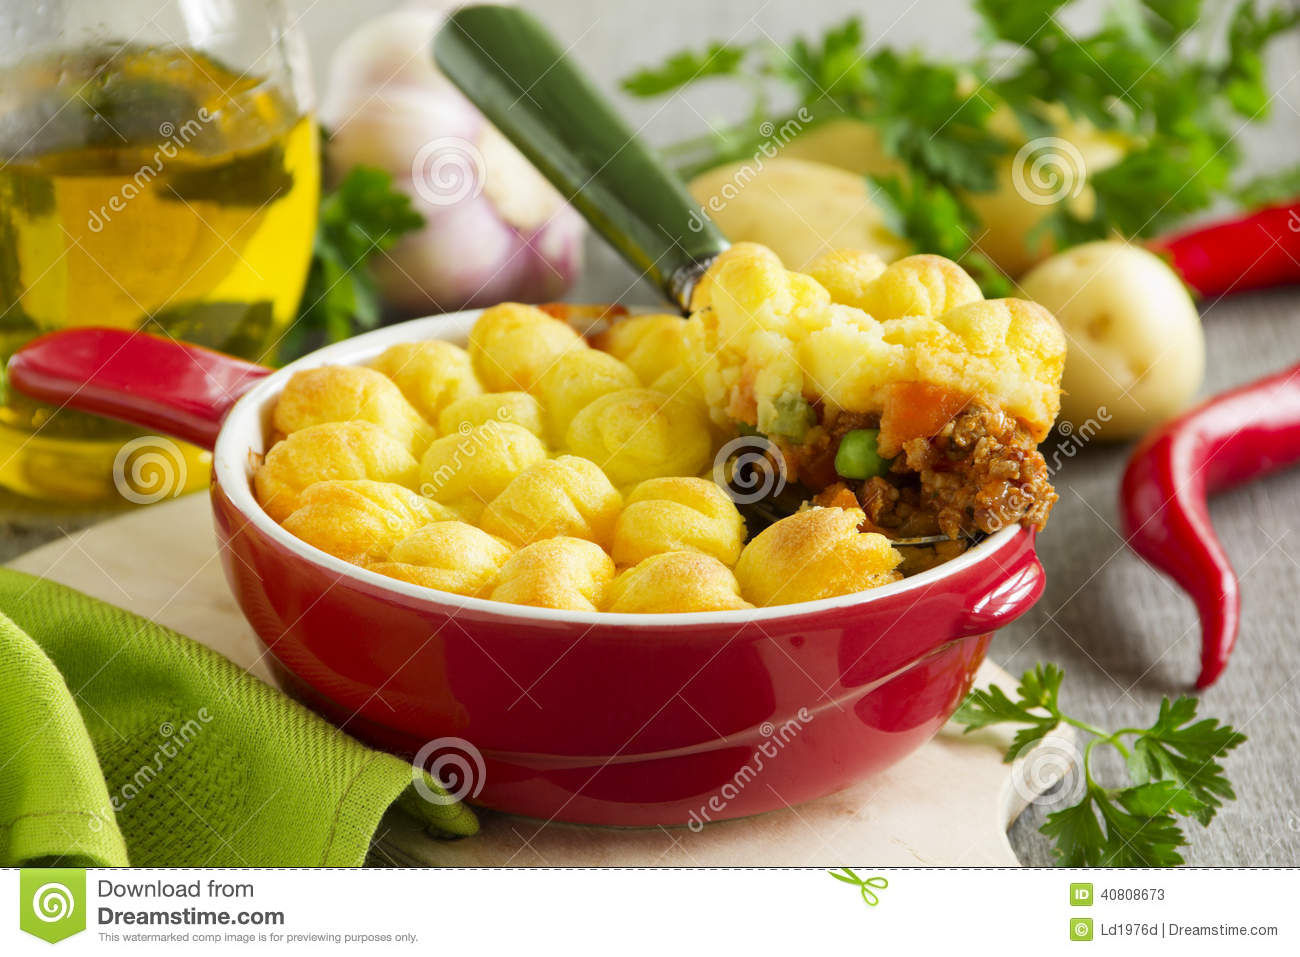 Hachis parmentier cuisine anglaise photo stock image for Anglaise cuisine